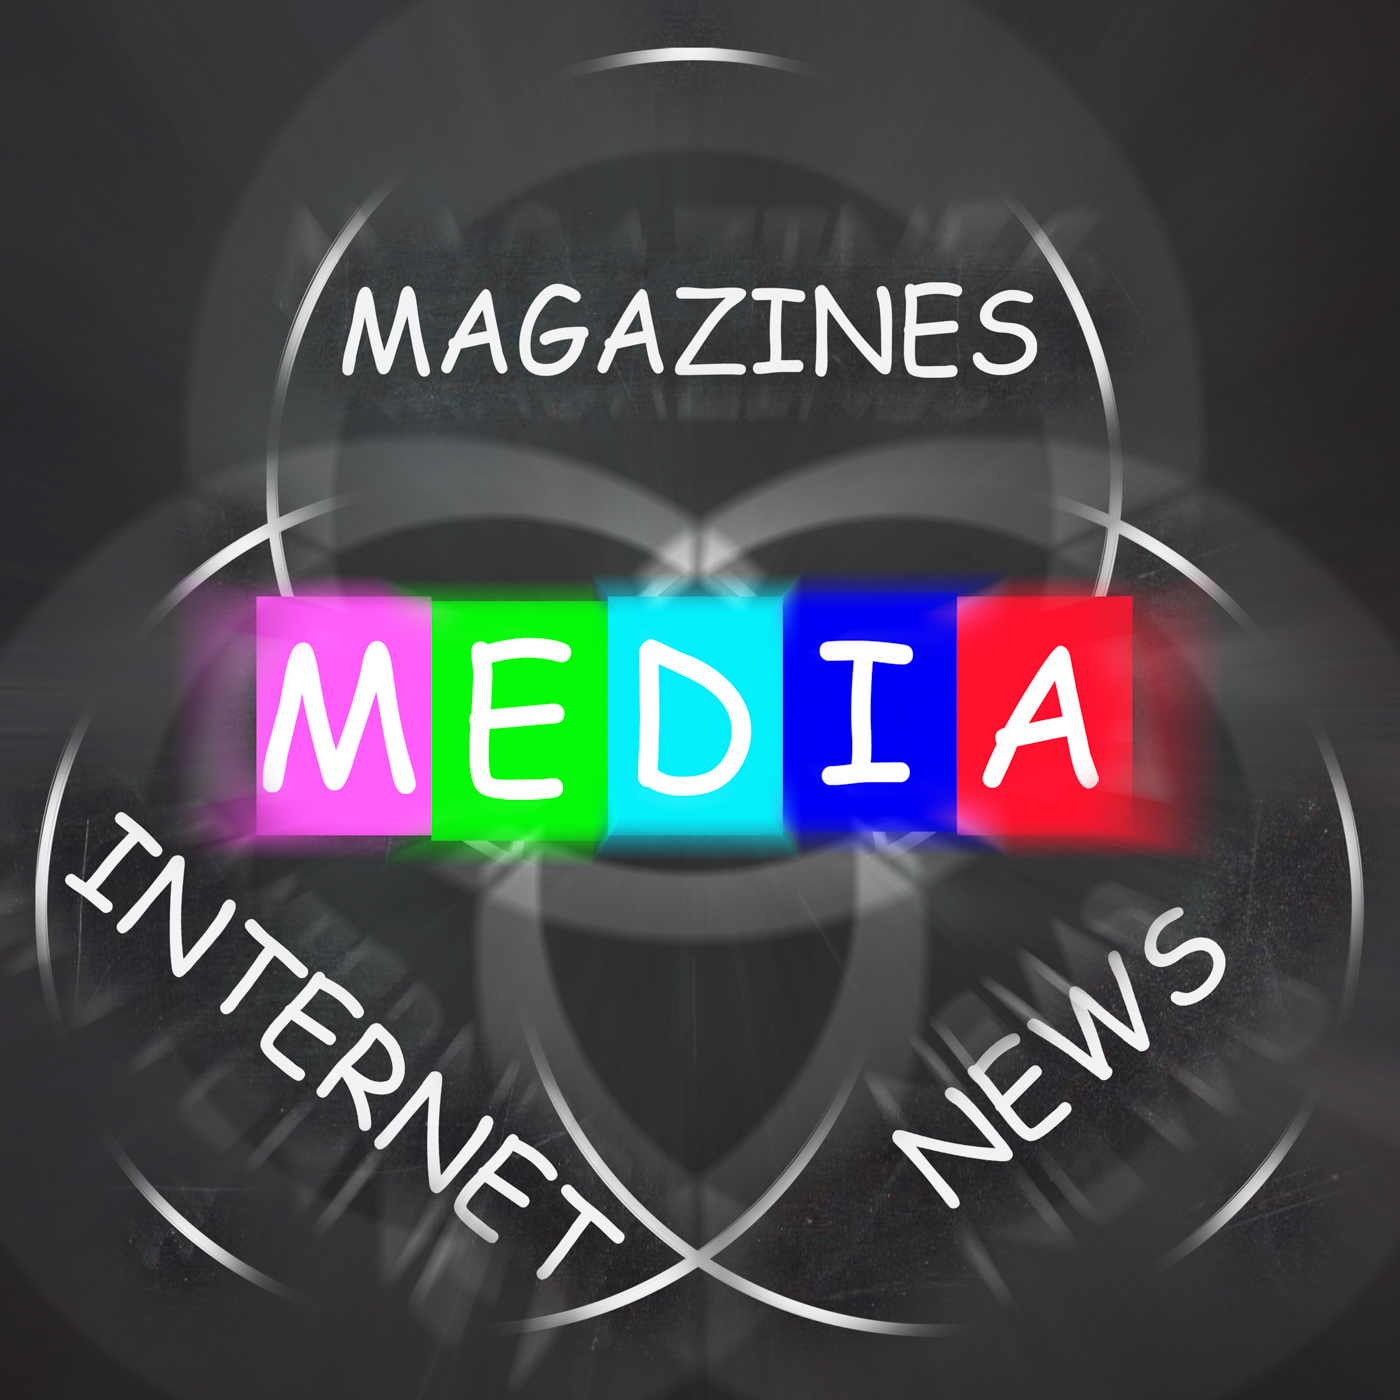 Media words displays magazines internet and news photo